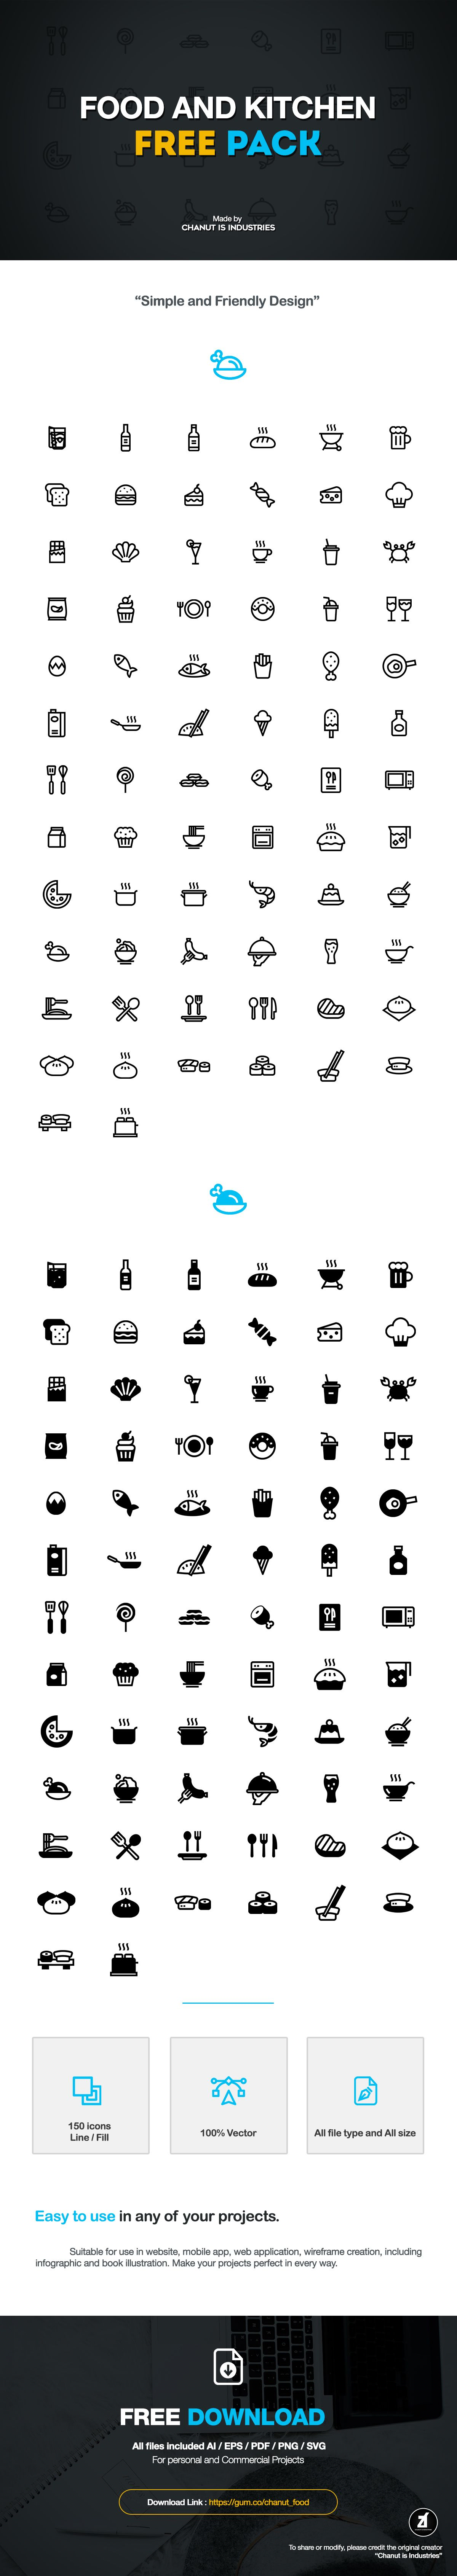 Commercial Kitchen Design App Free Free Food And Kitchen Icons By Chanut Is Industries On Behance